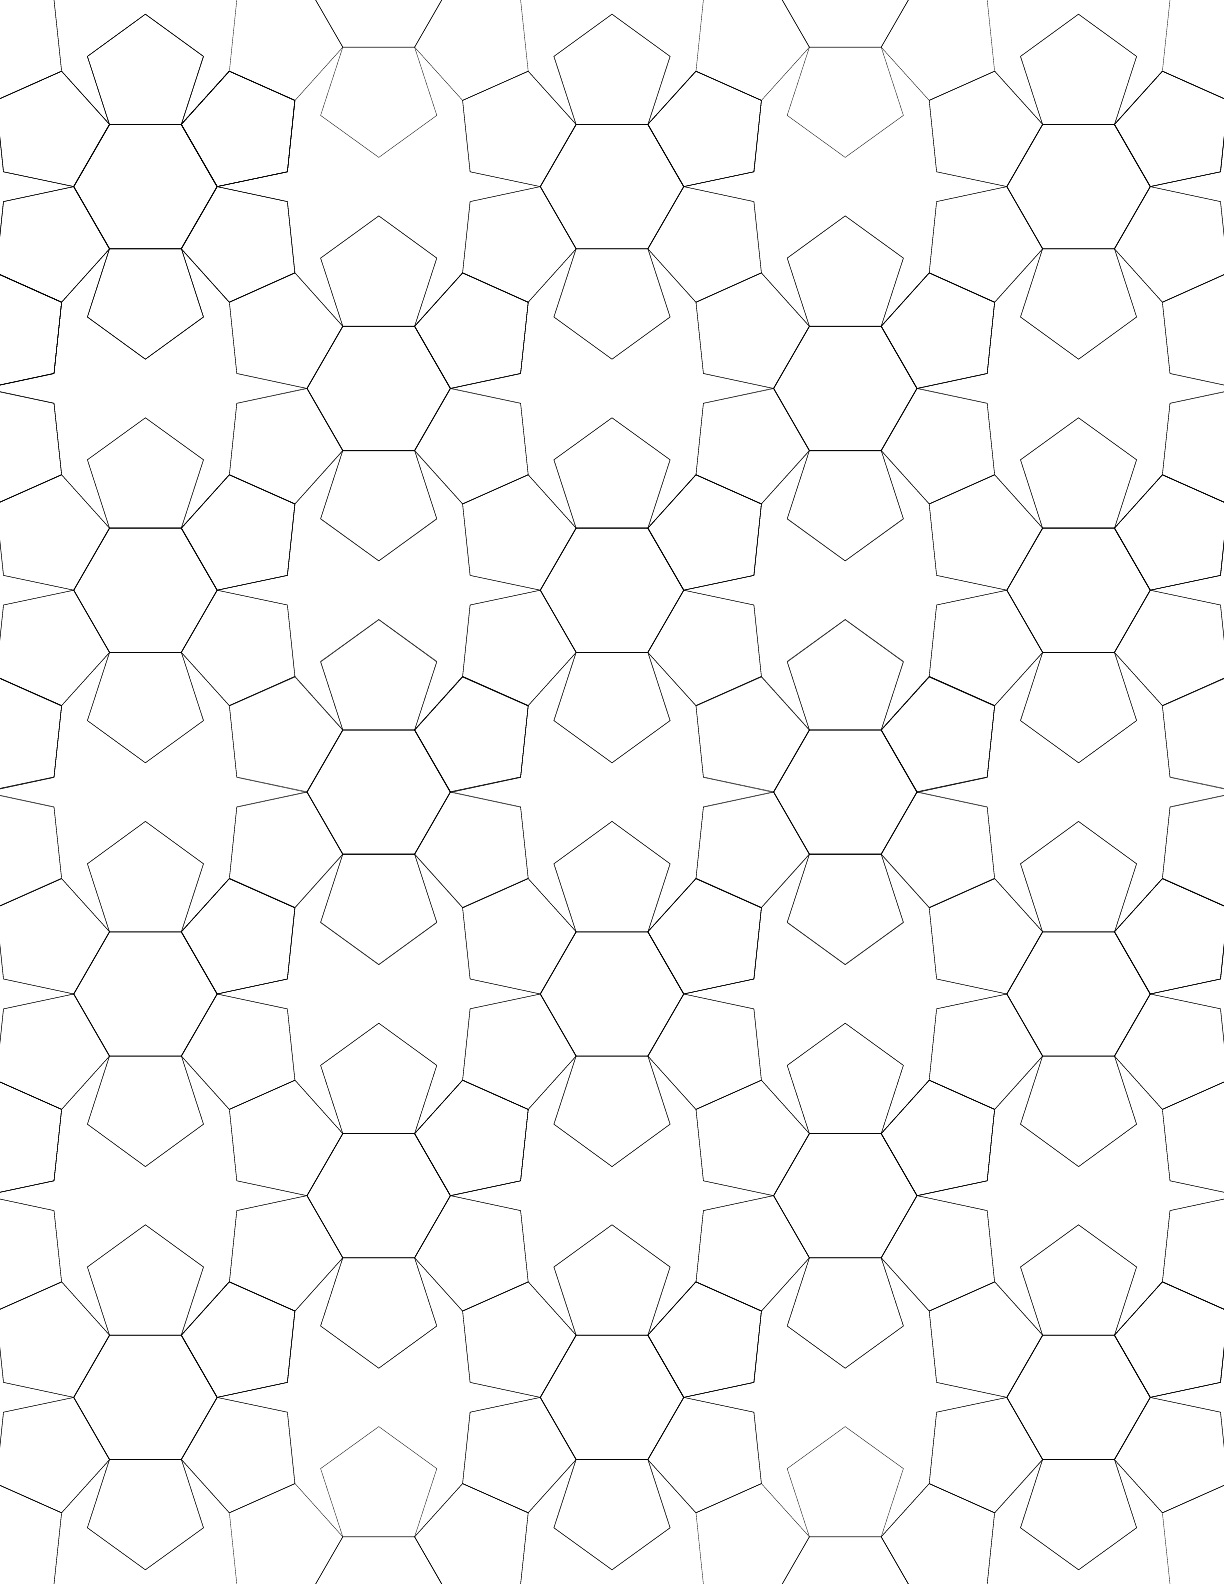 Unique Hexagonal Graph Paper Vorlage Ensign - FORTSETZUNG ...